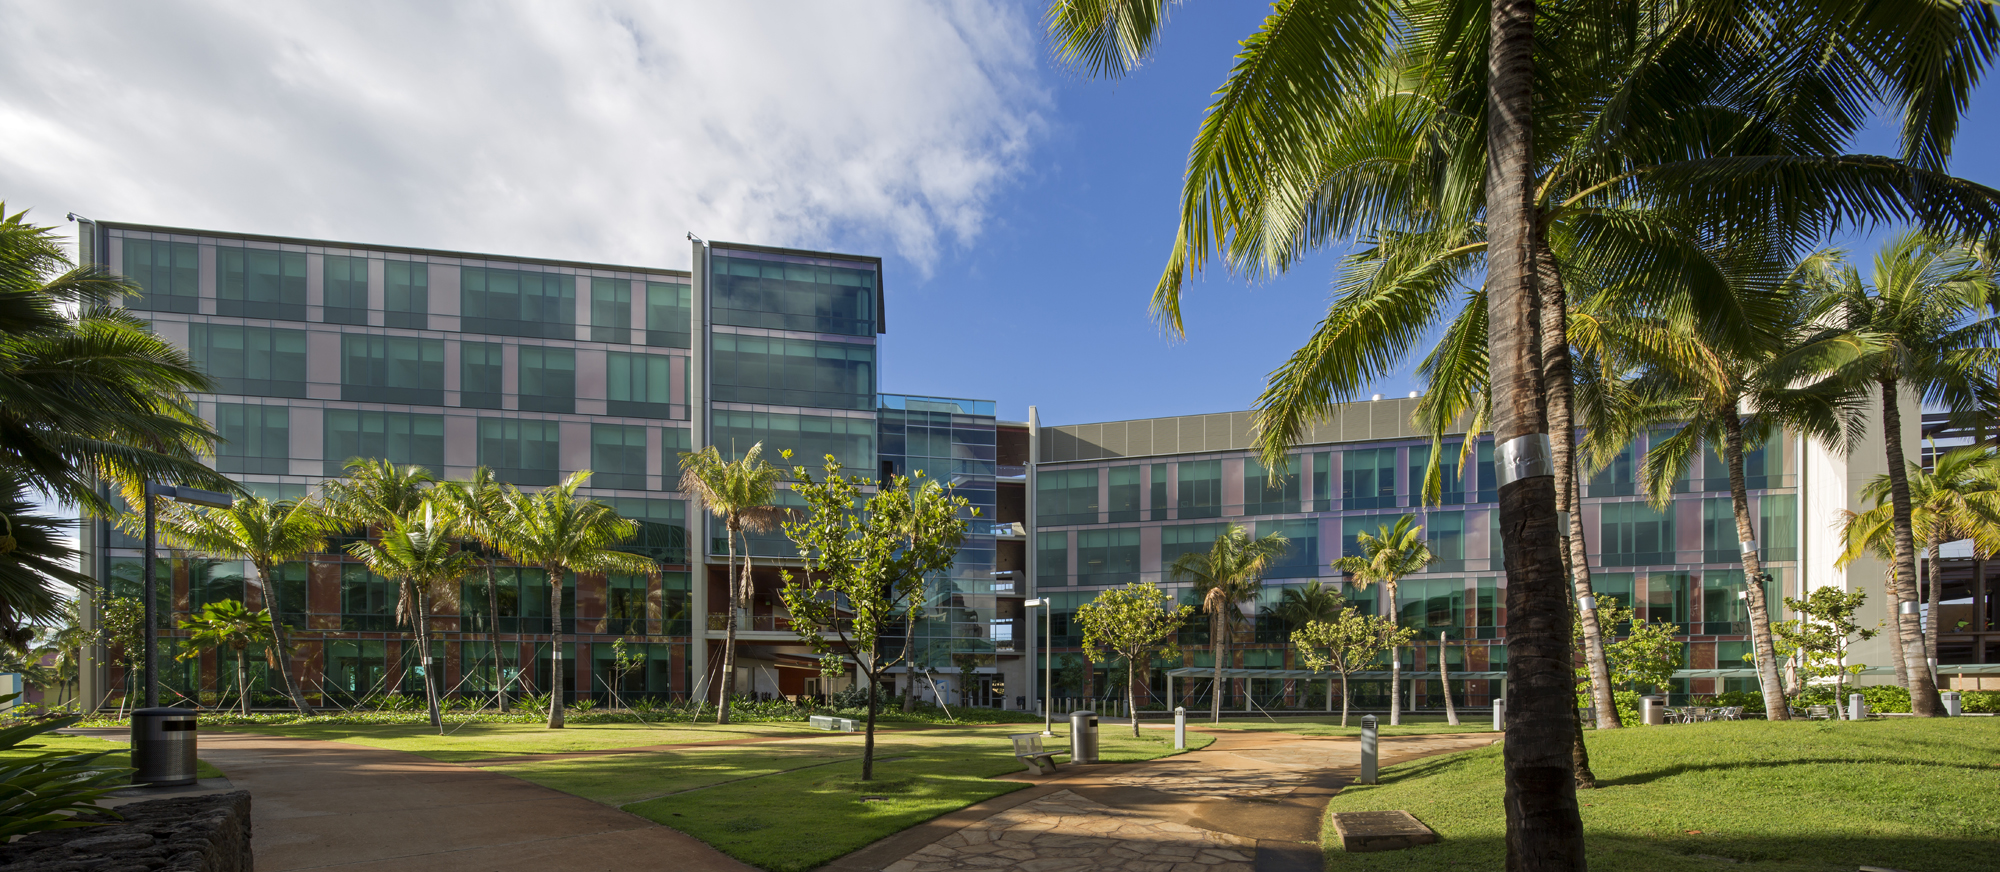 The University of Hawaii Cancer Center building in Kakaako